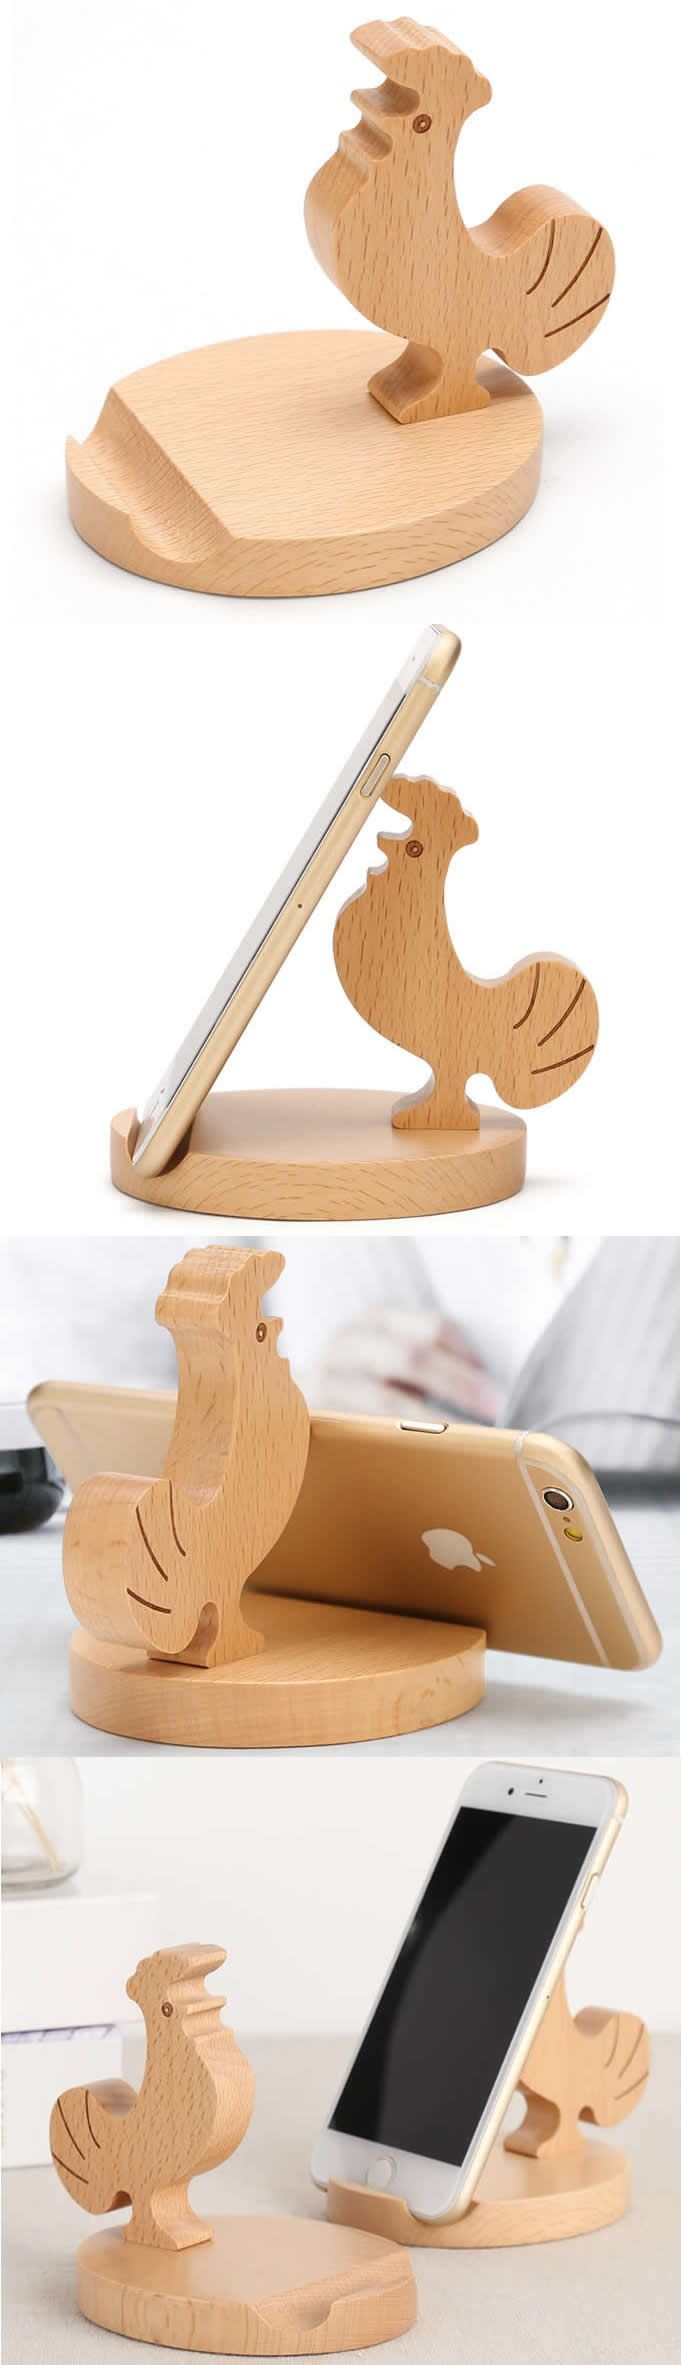 Wooden Roster Cell Phone iPad Stand Holder